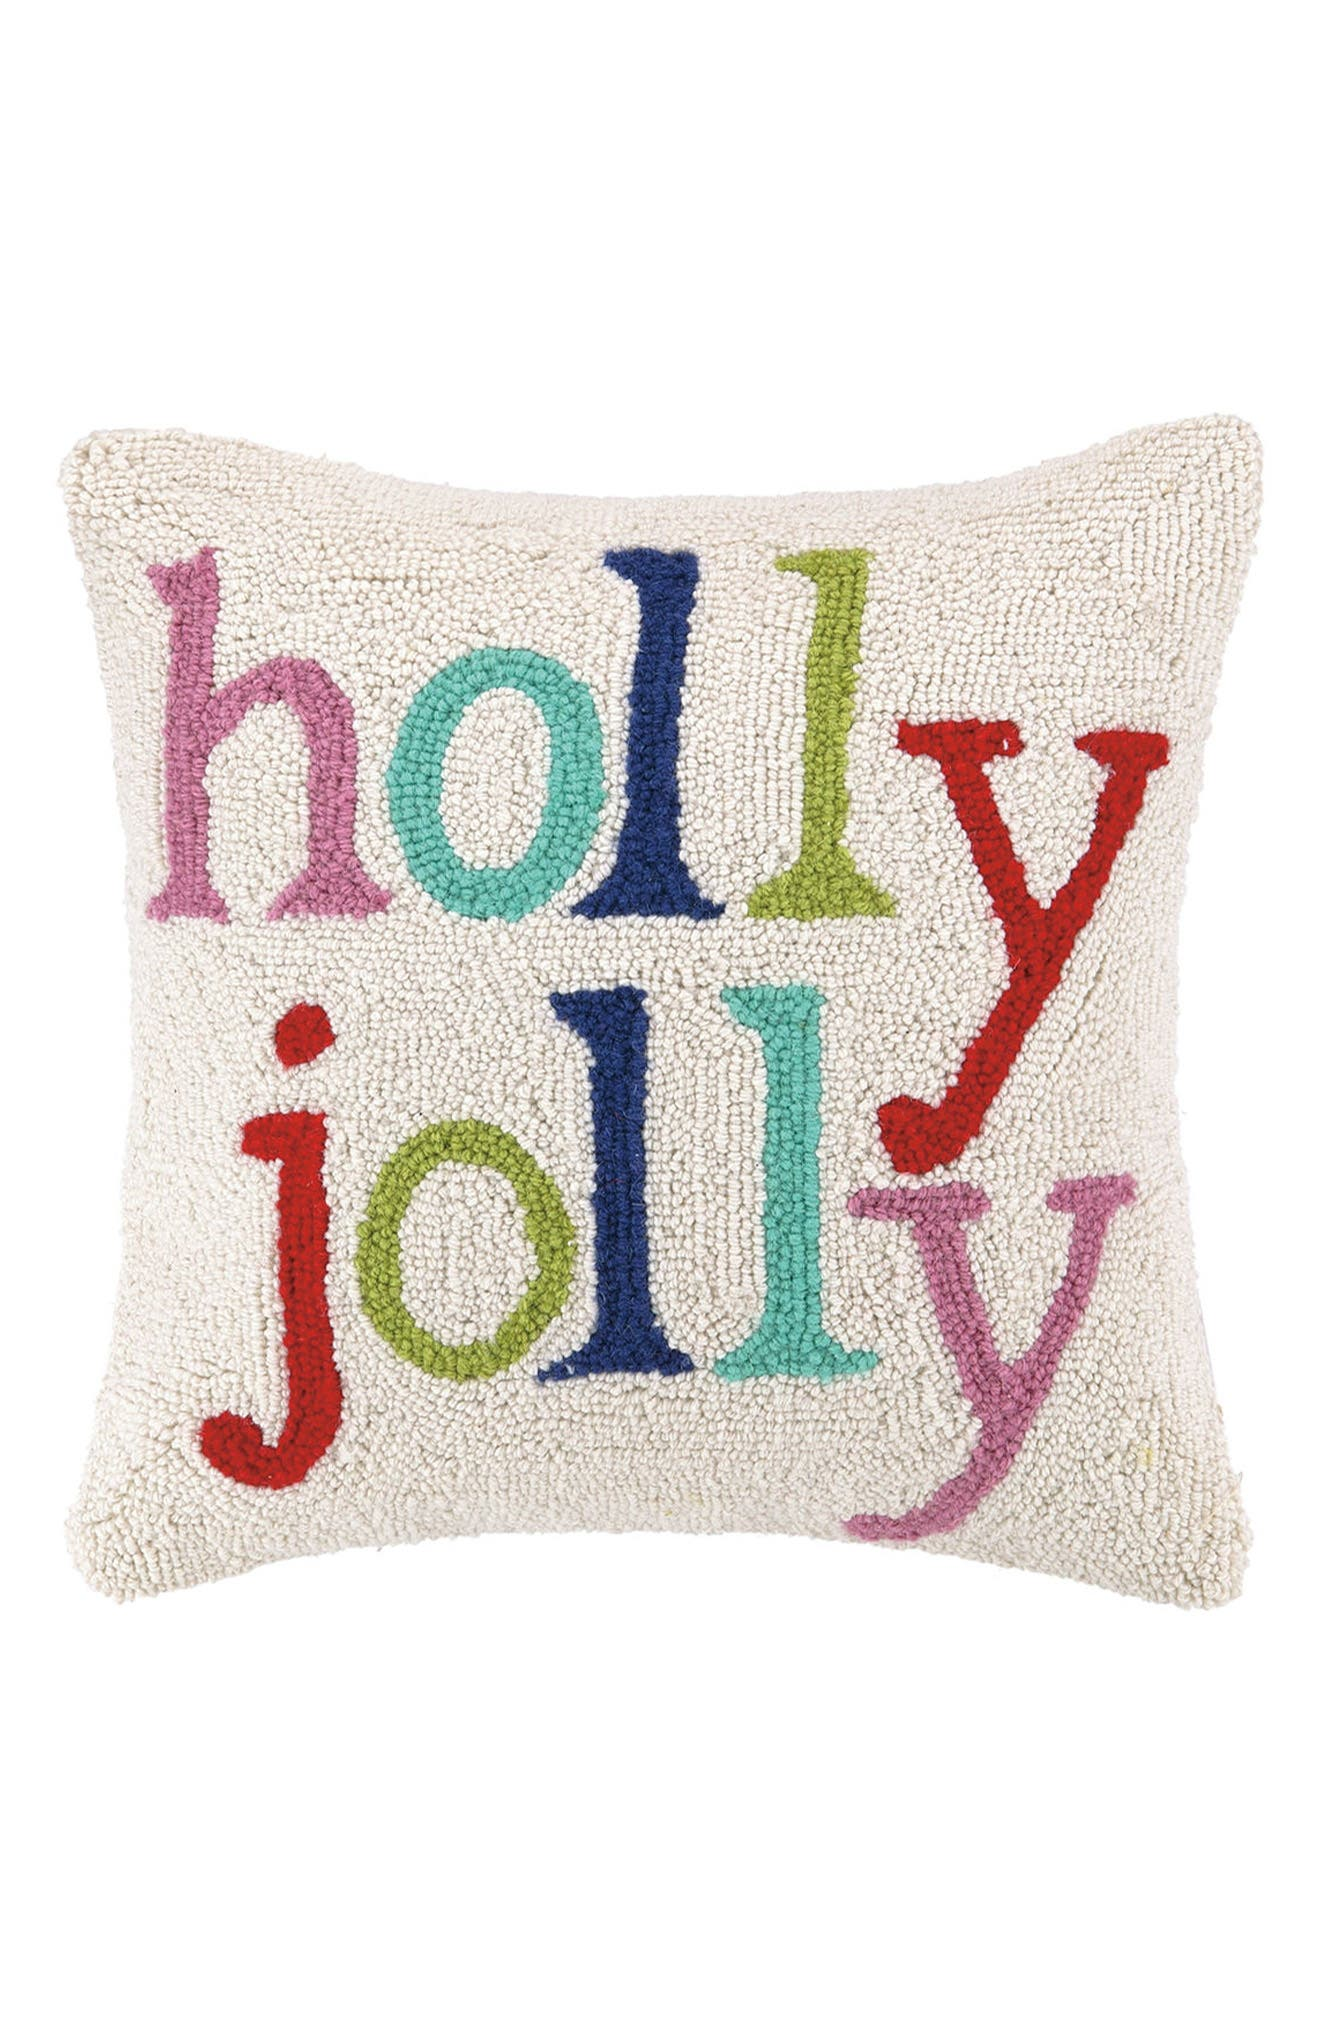 Holly Jolly Hooked Accent Pillow,                         Main,                         color, Ivory